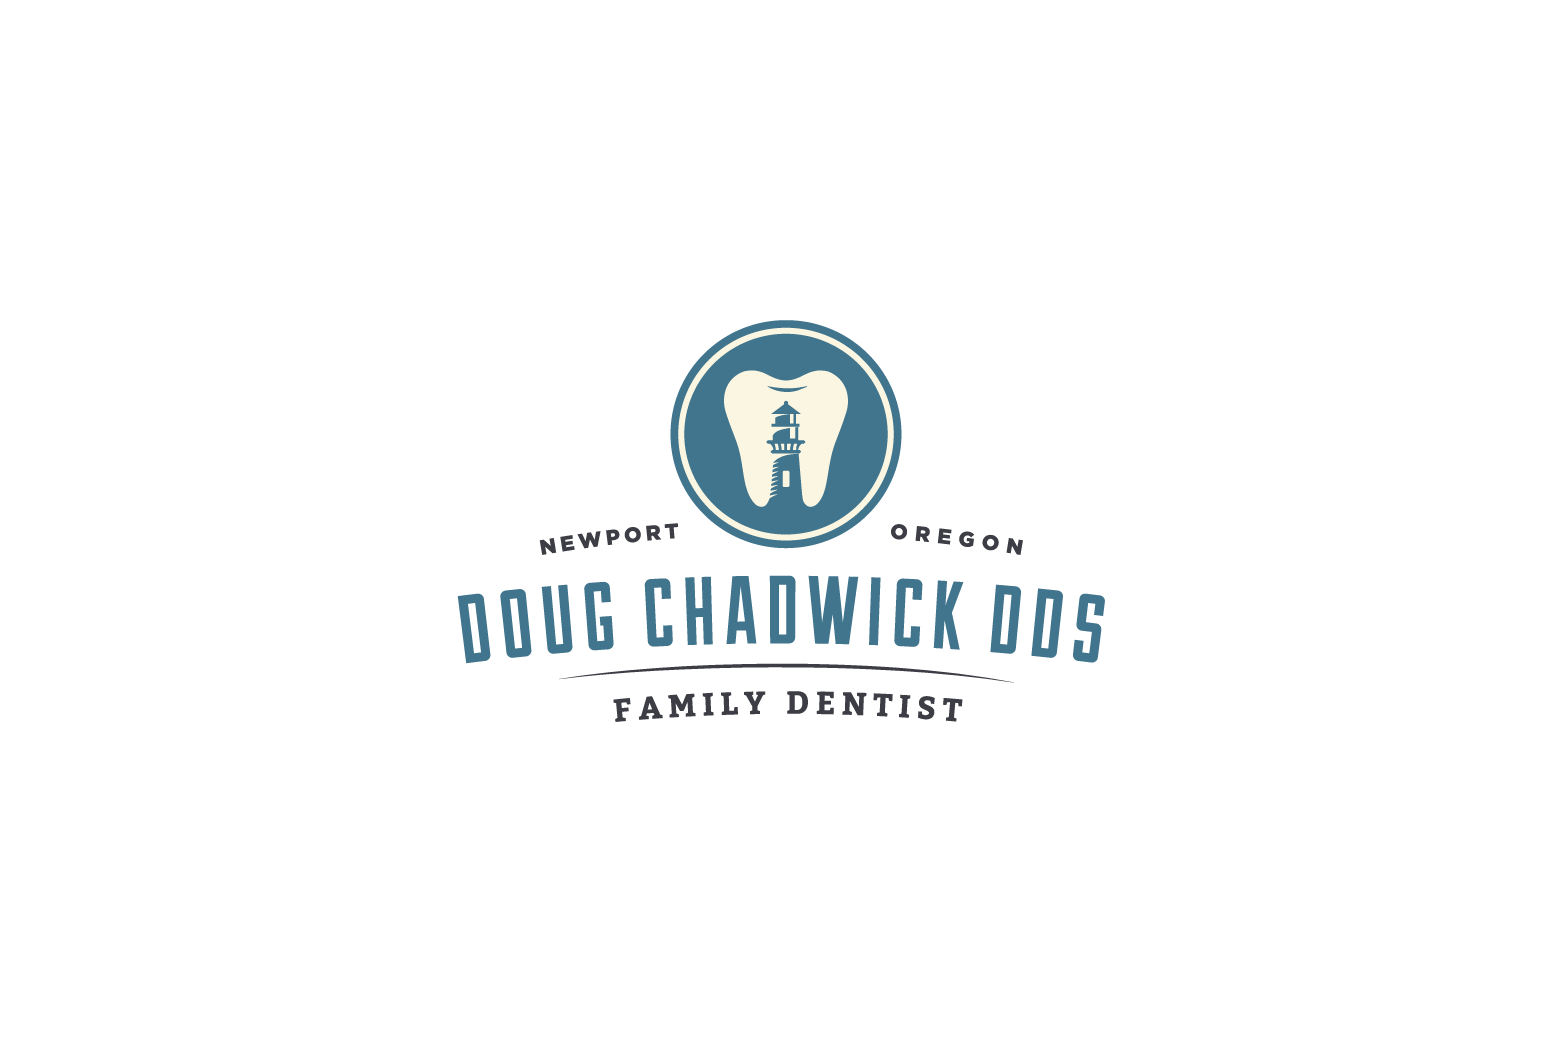 Doug Chadwick Dentist Logo Design